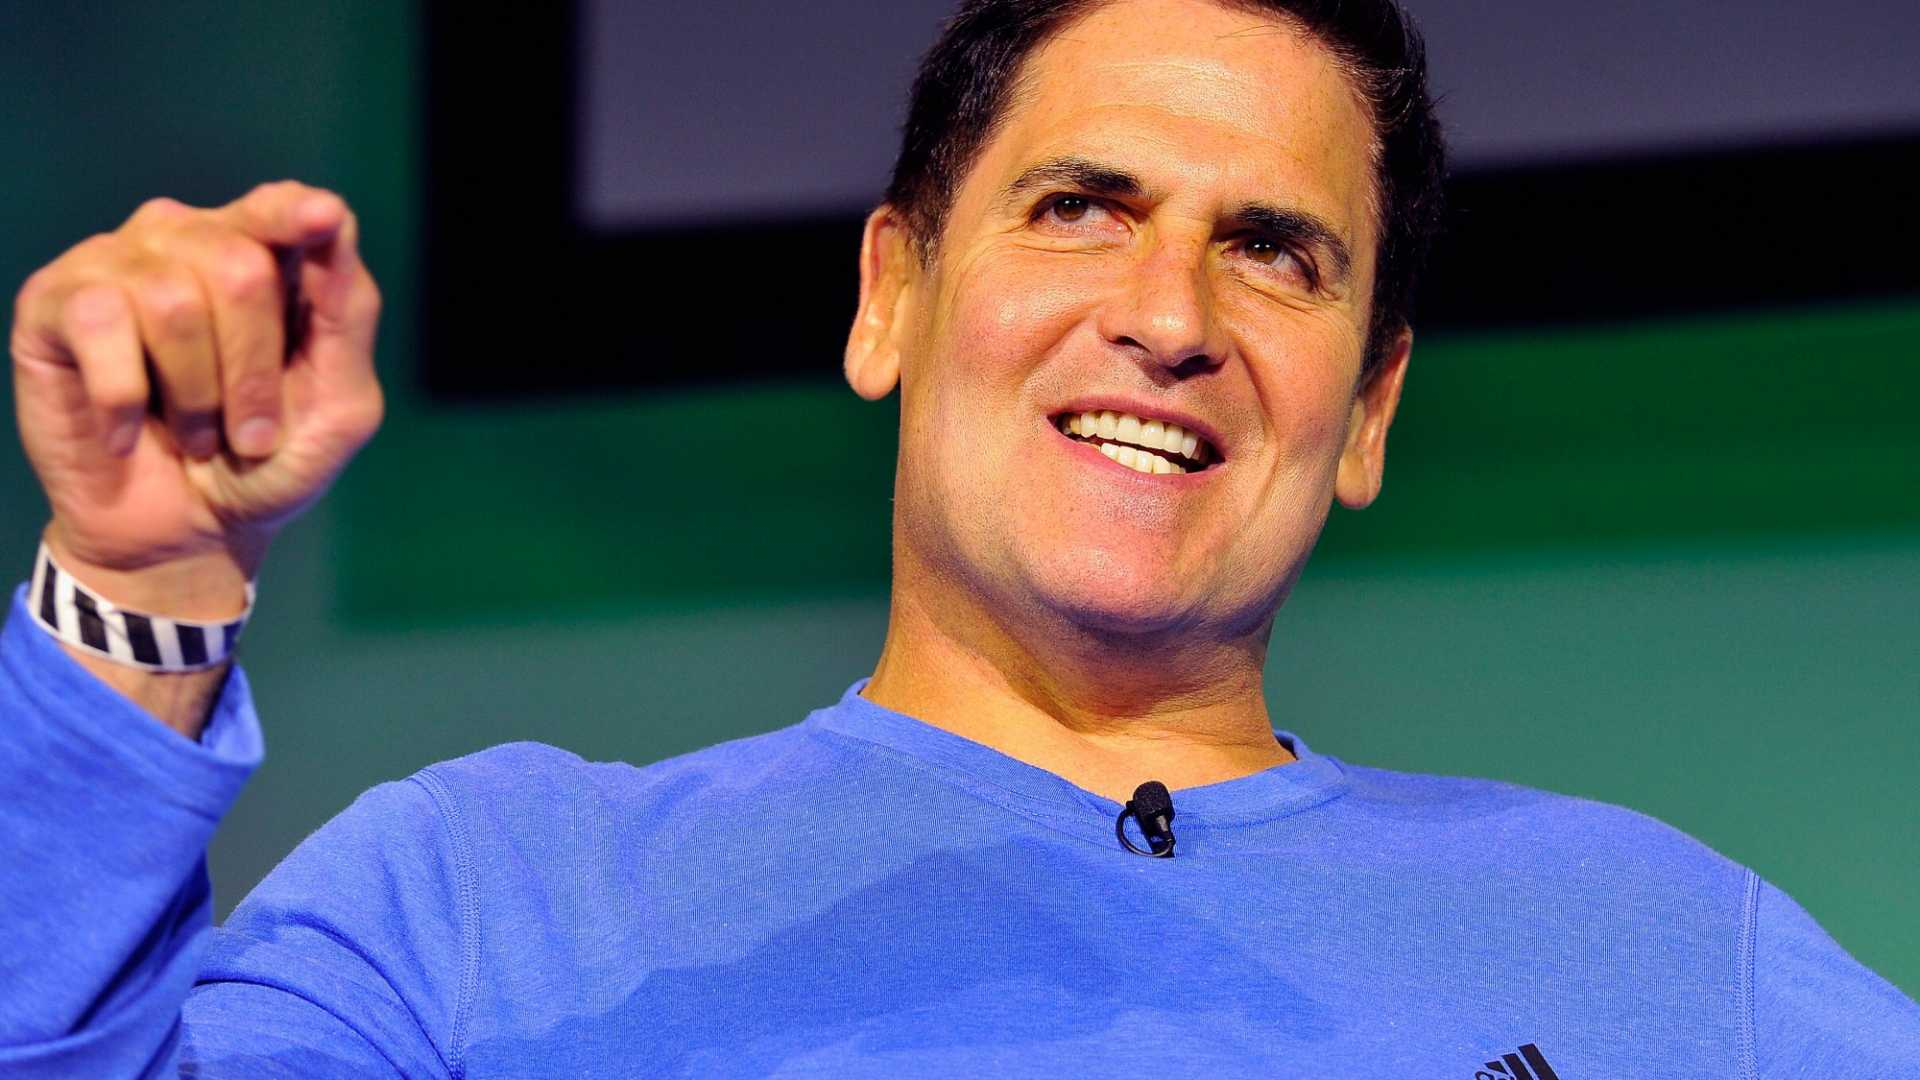 Mark Cuban's Personal Brand Reveals the Real Reason He Likes Being Wealthy